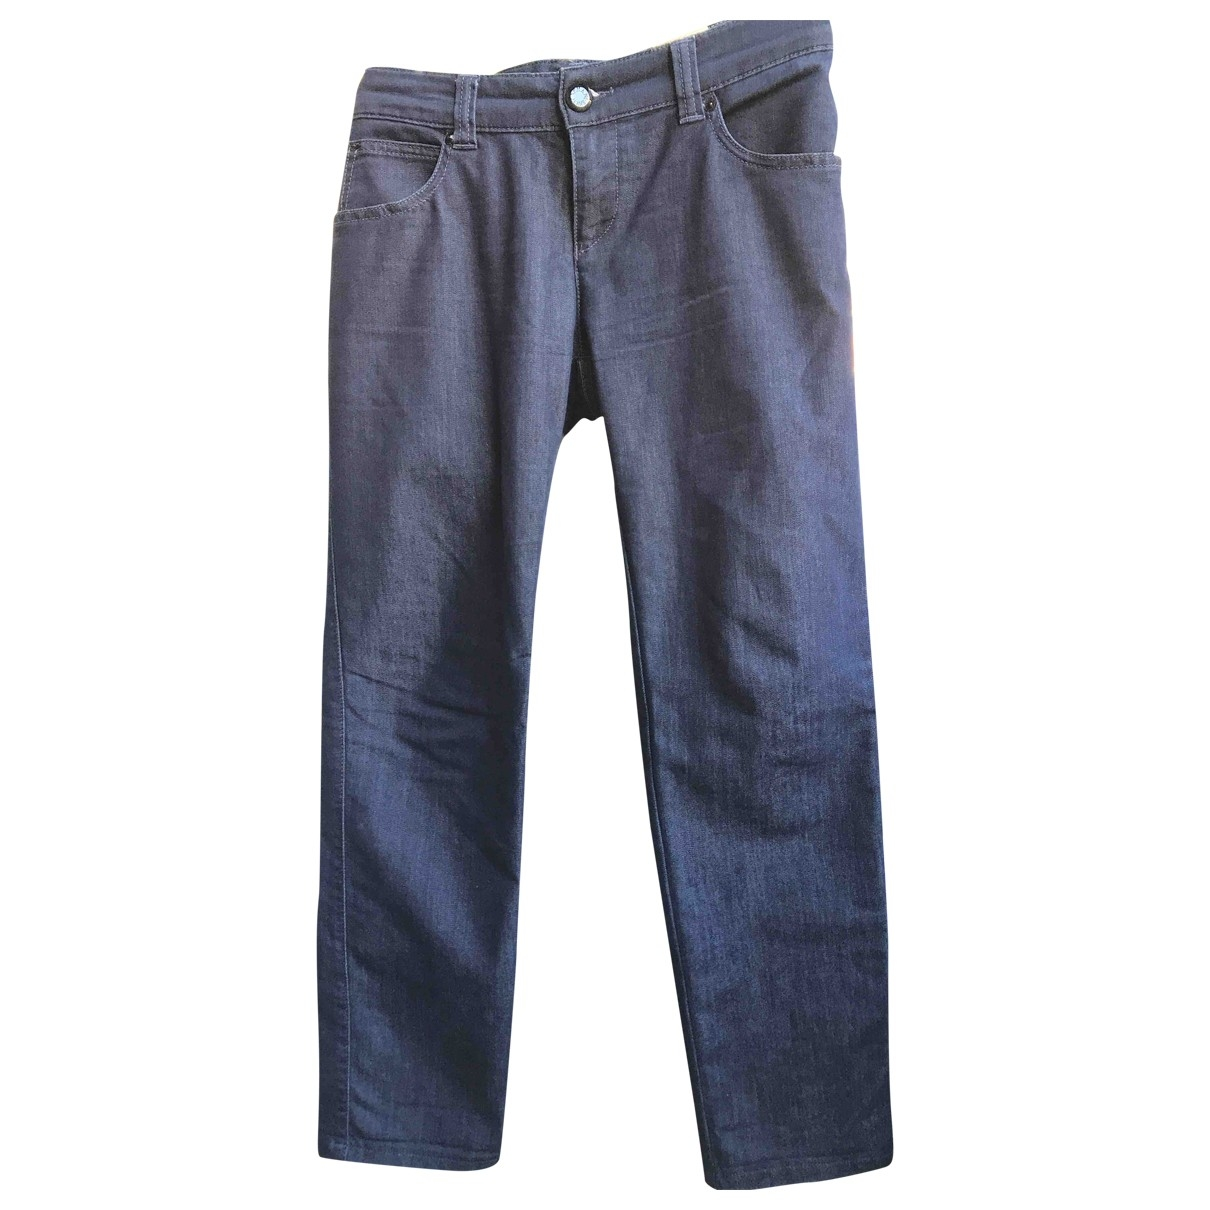 Armani Jeans \N Blue Cotton - elasthane Jeans for Women 30 US